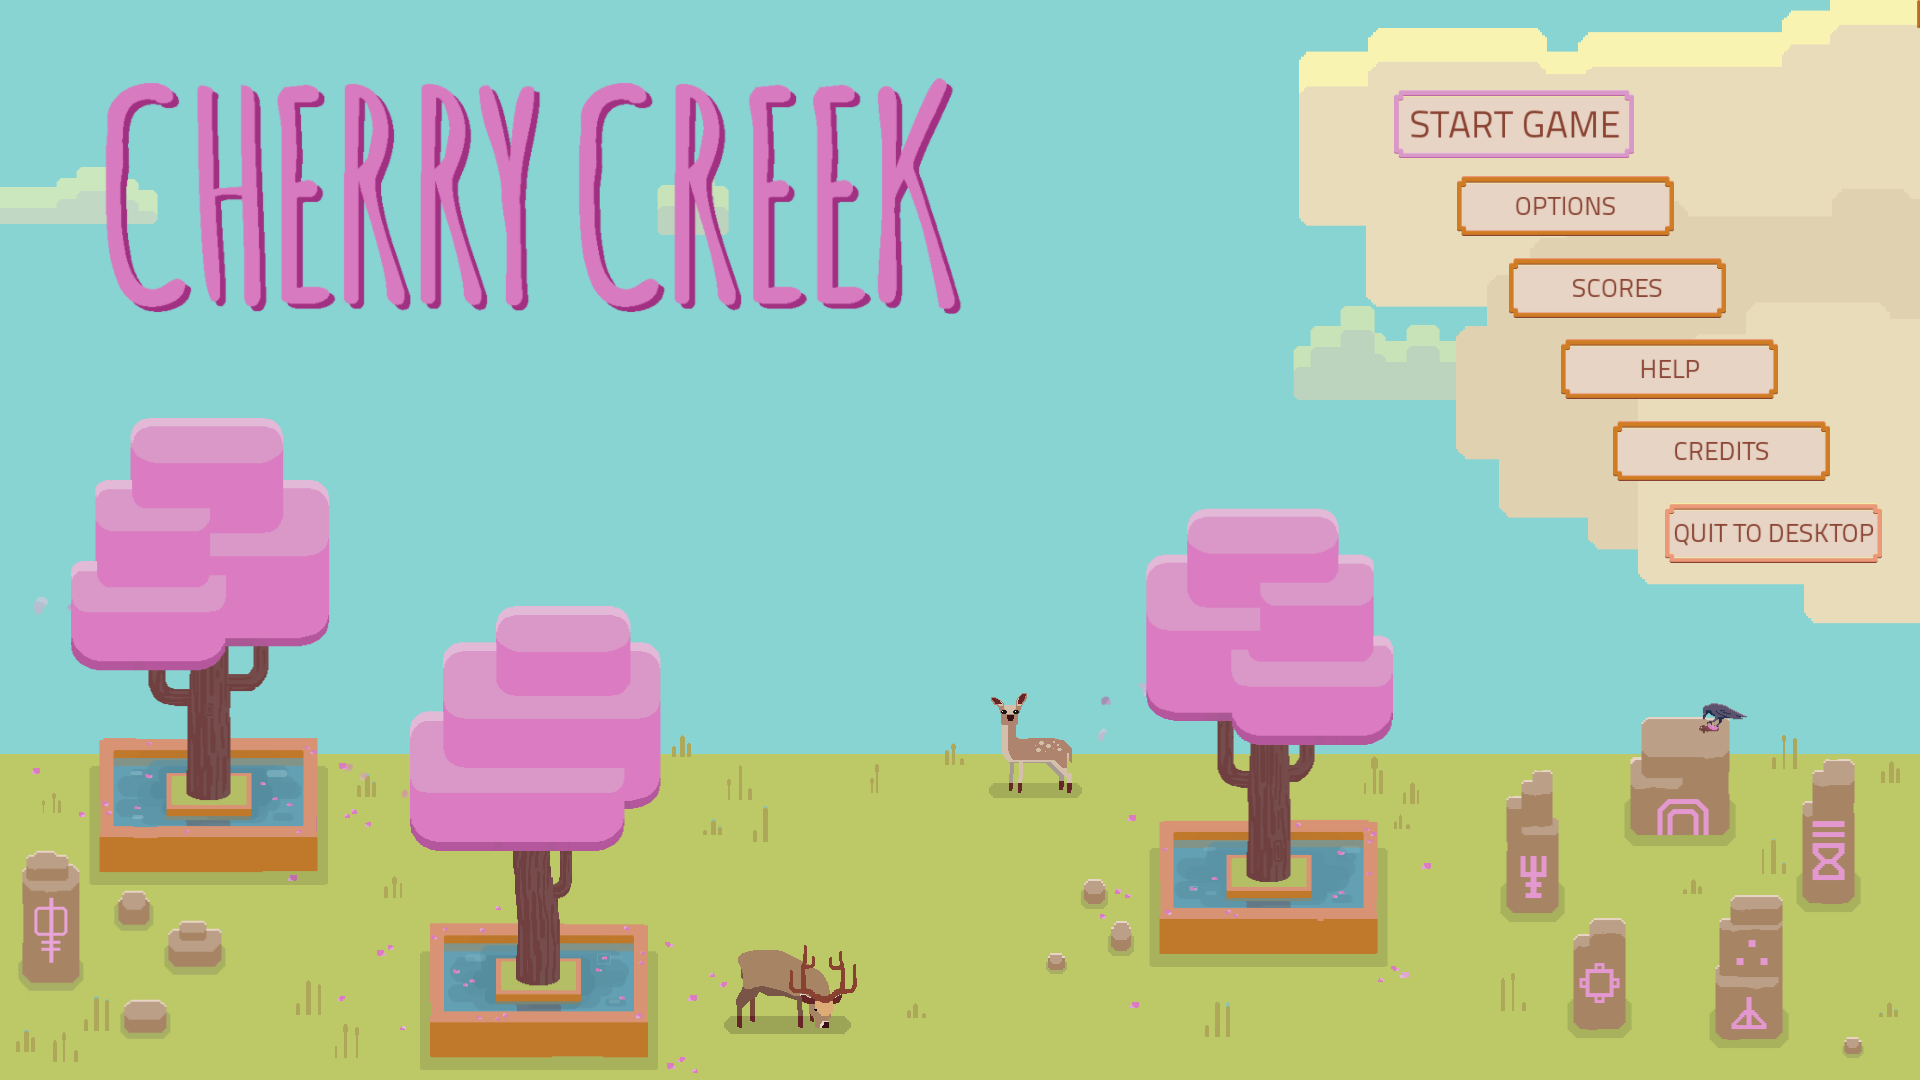 Screenshot showing the title screen of Cherry Creek.